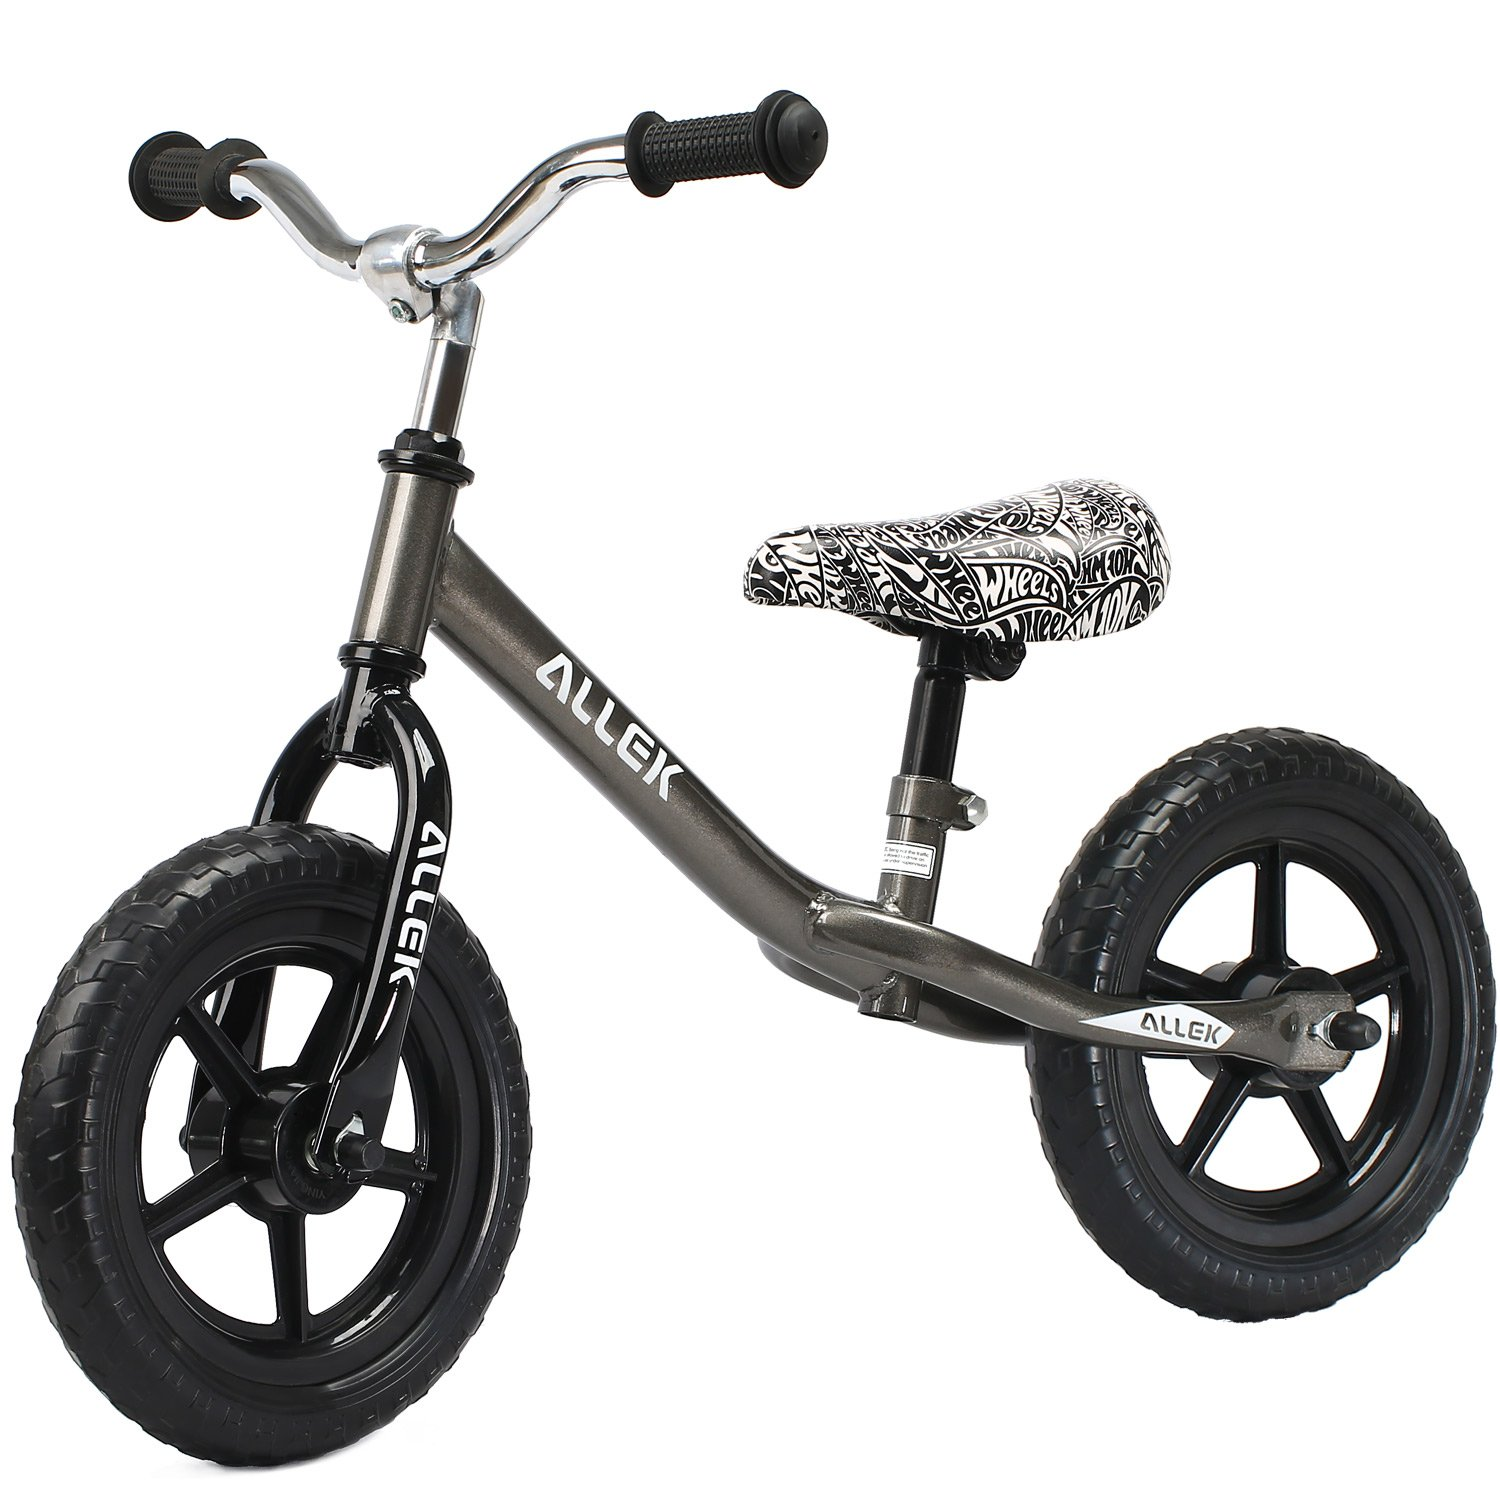 Allek Balance Bike for Kids & Toddlers, 12'' No-Pedal Run Bicycle Perfect for Balance Training 18 Month to 6 Year Old Child